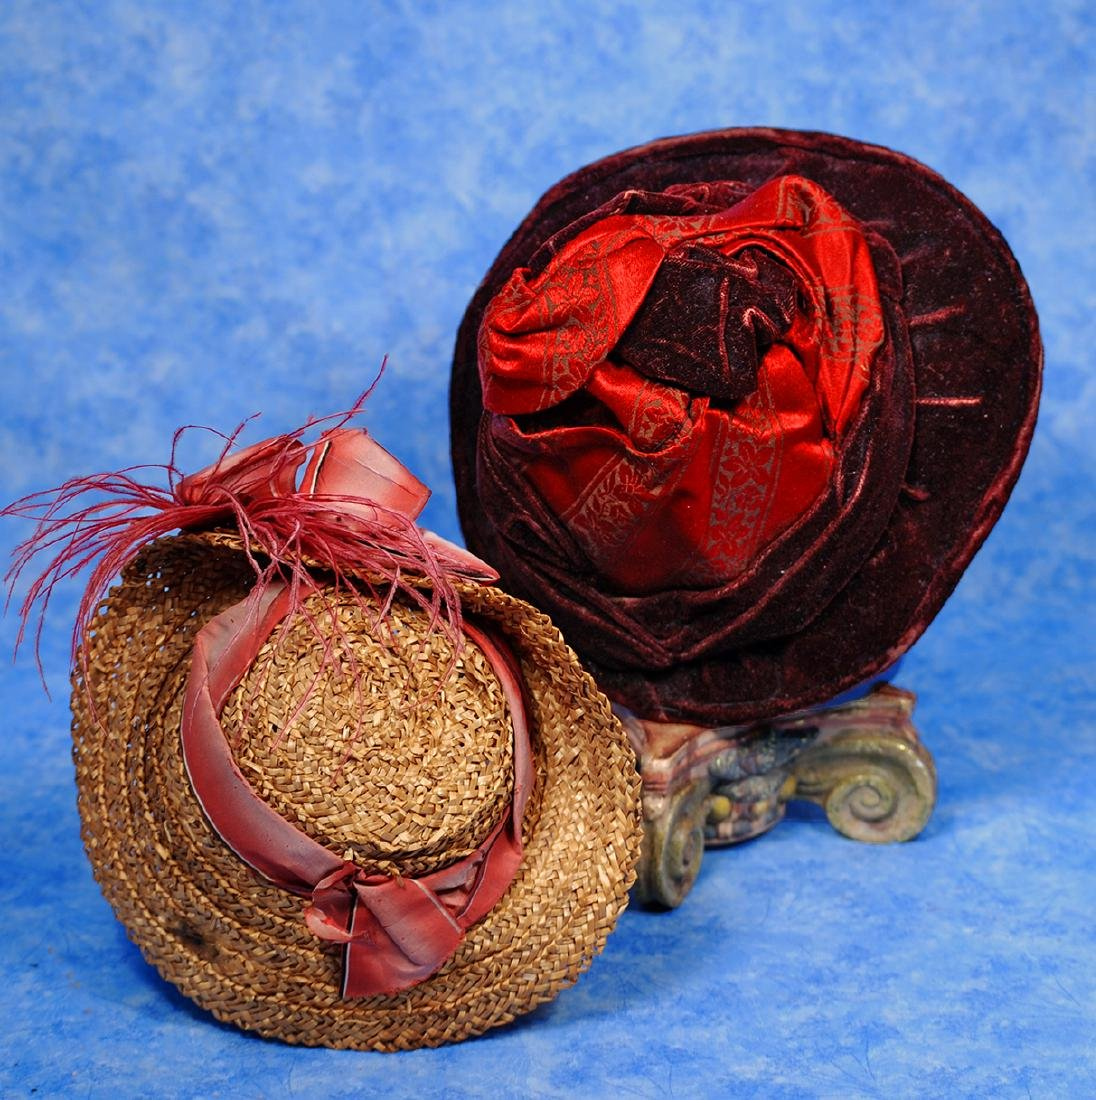 40. TWO ANTIQUE DOLL BONNETS. (1) Woven straw bonnet